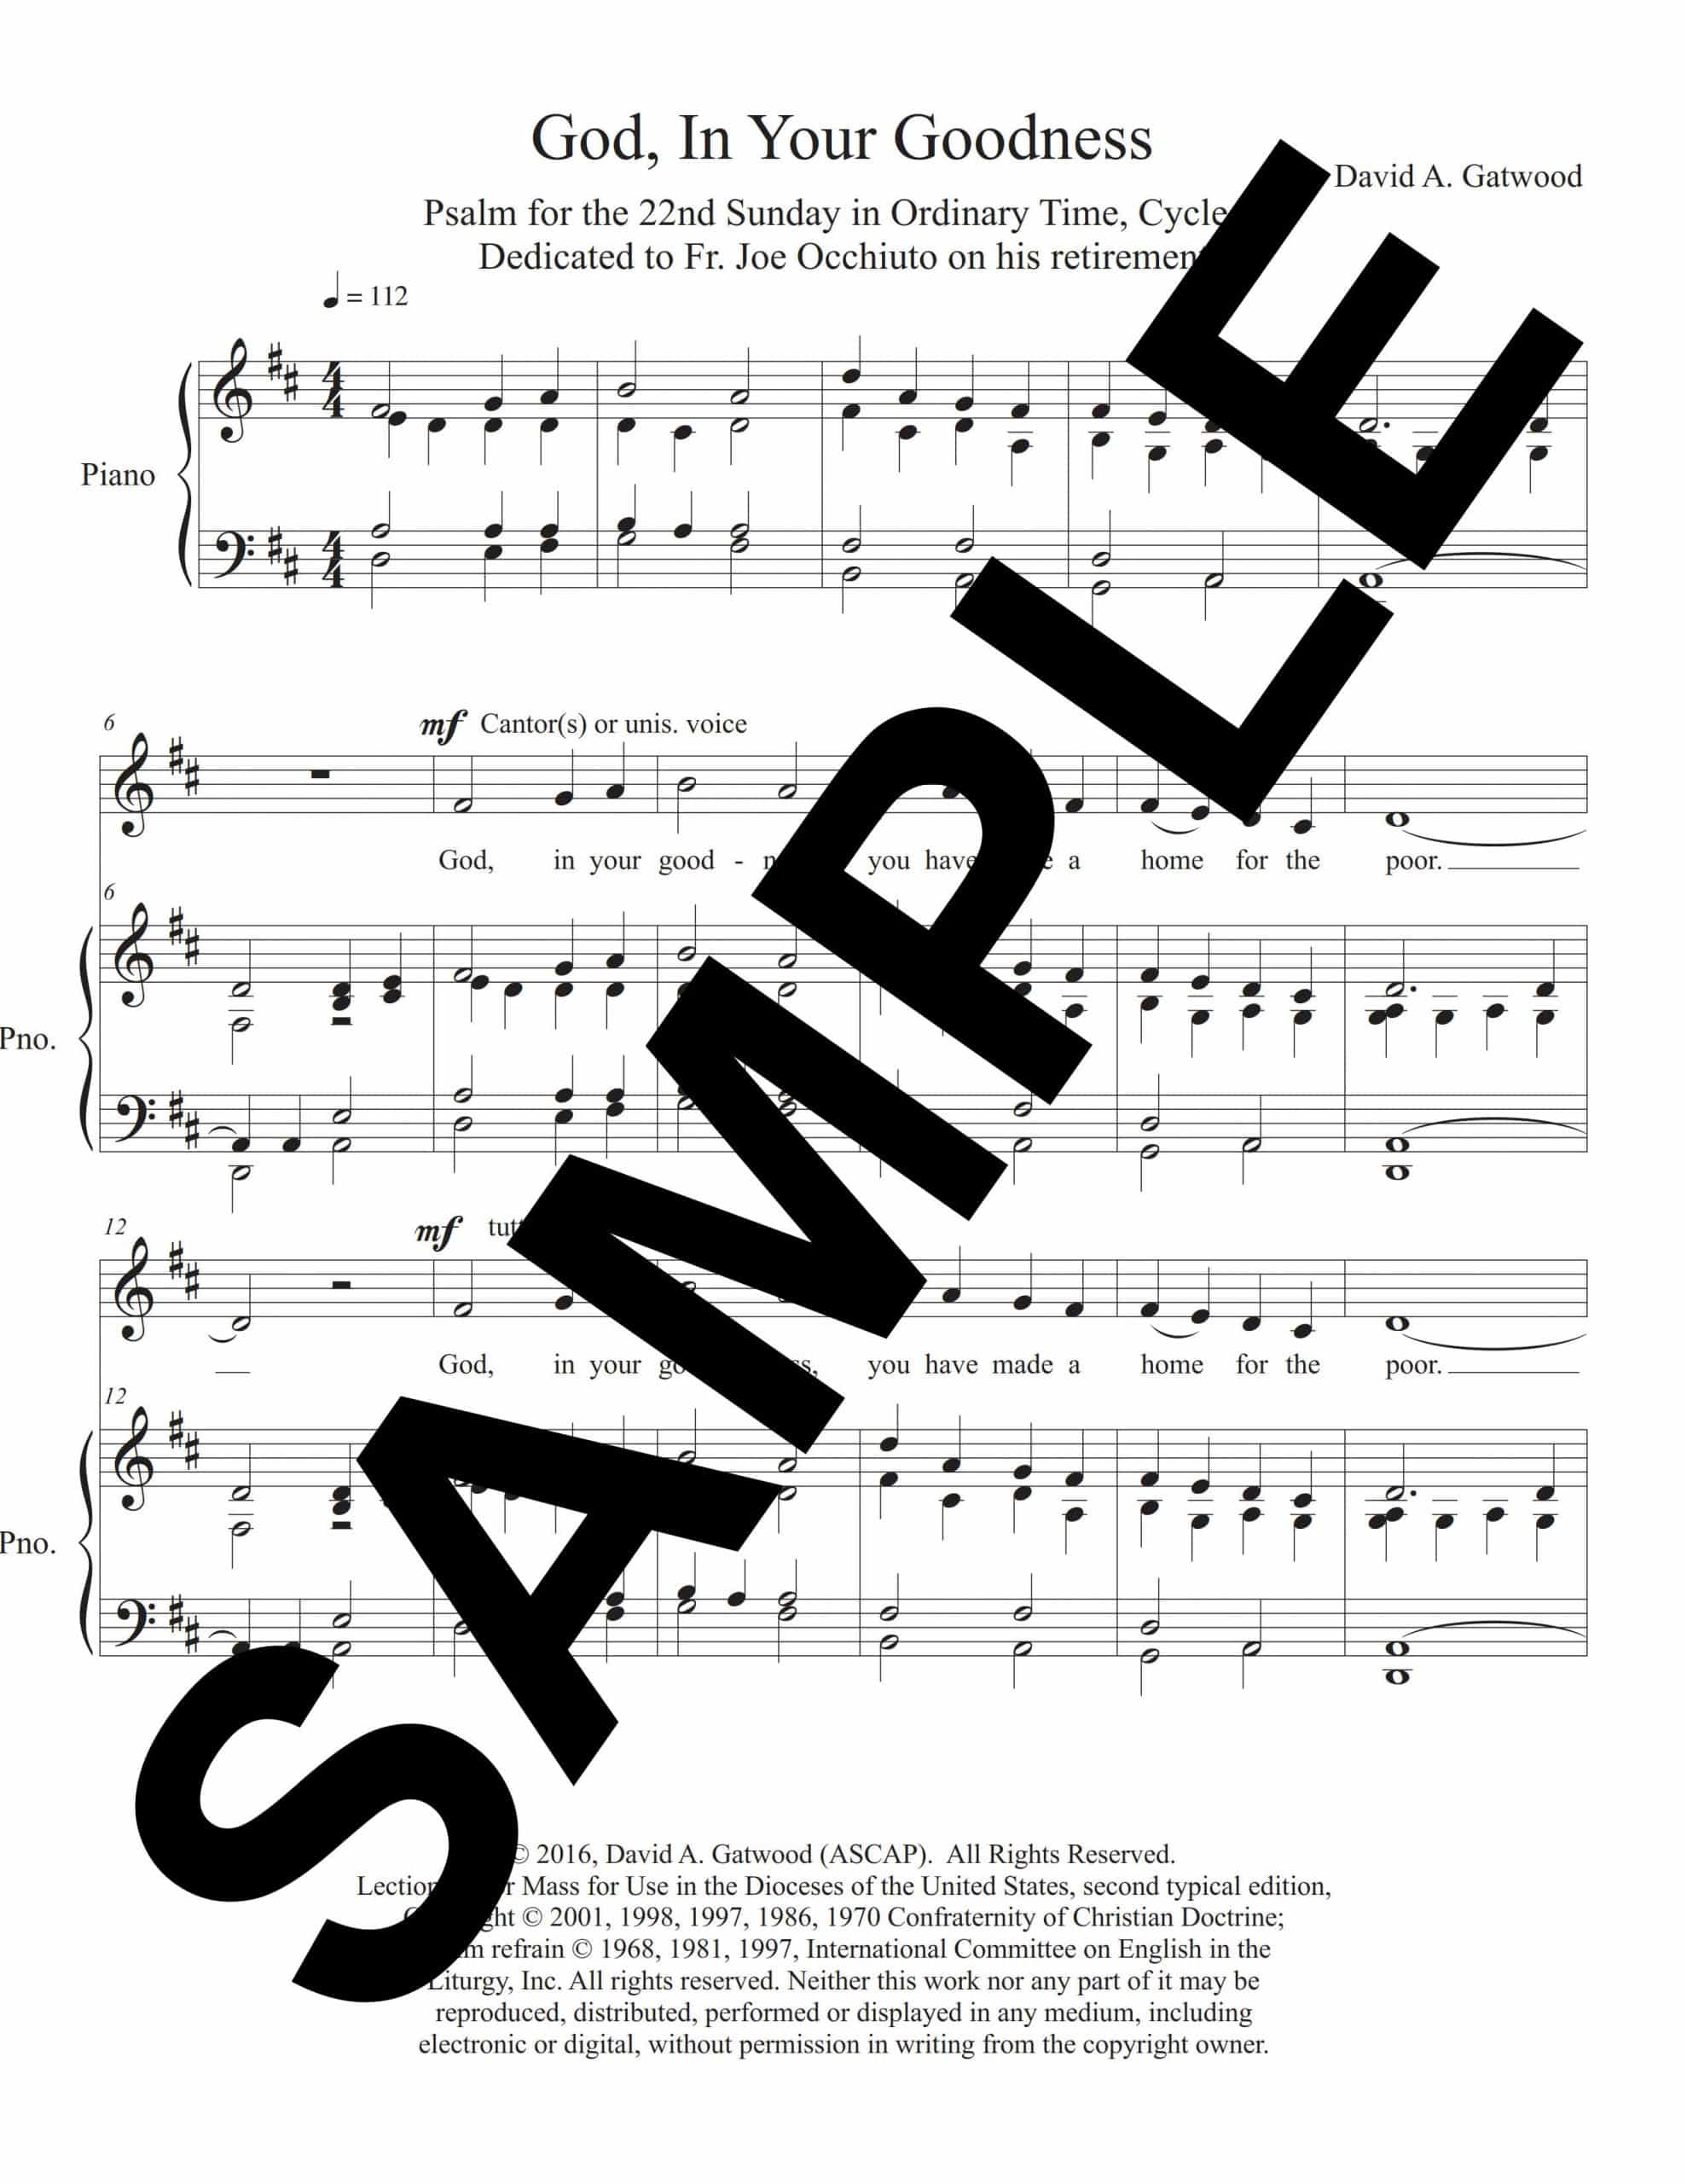 Psalm 68 Gatwood Sample Melody Piano scaled